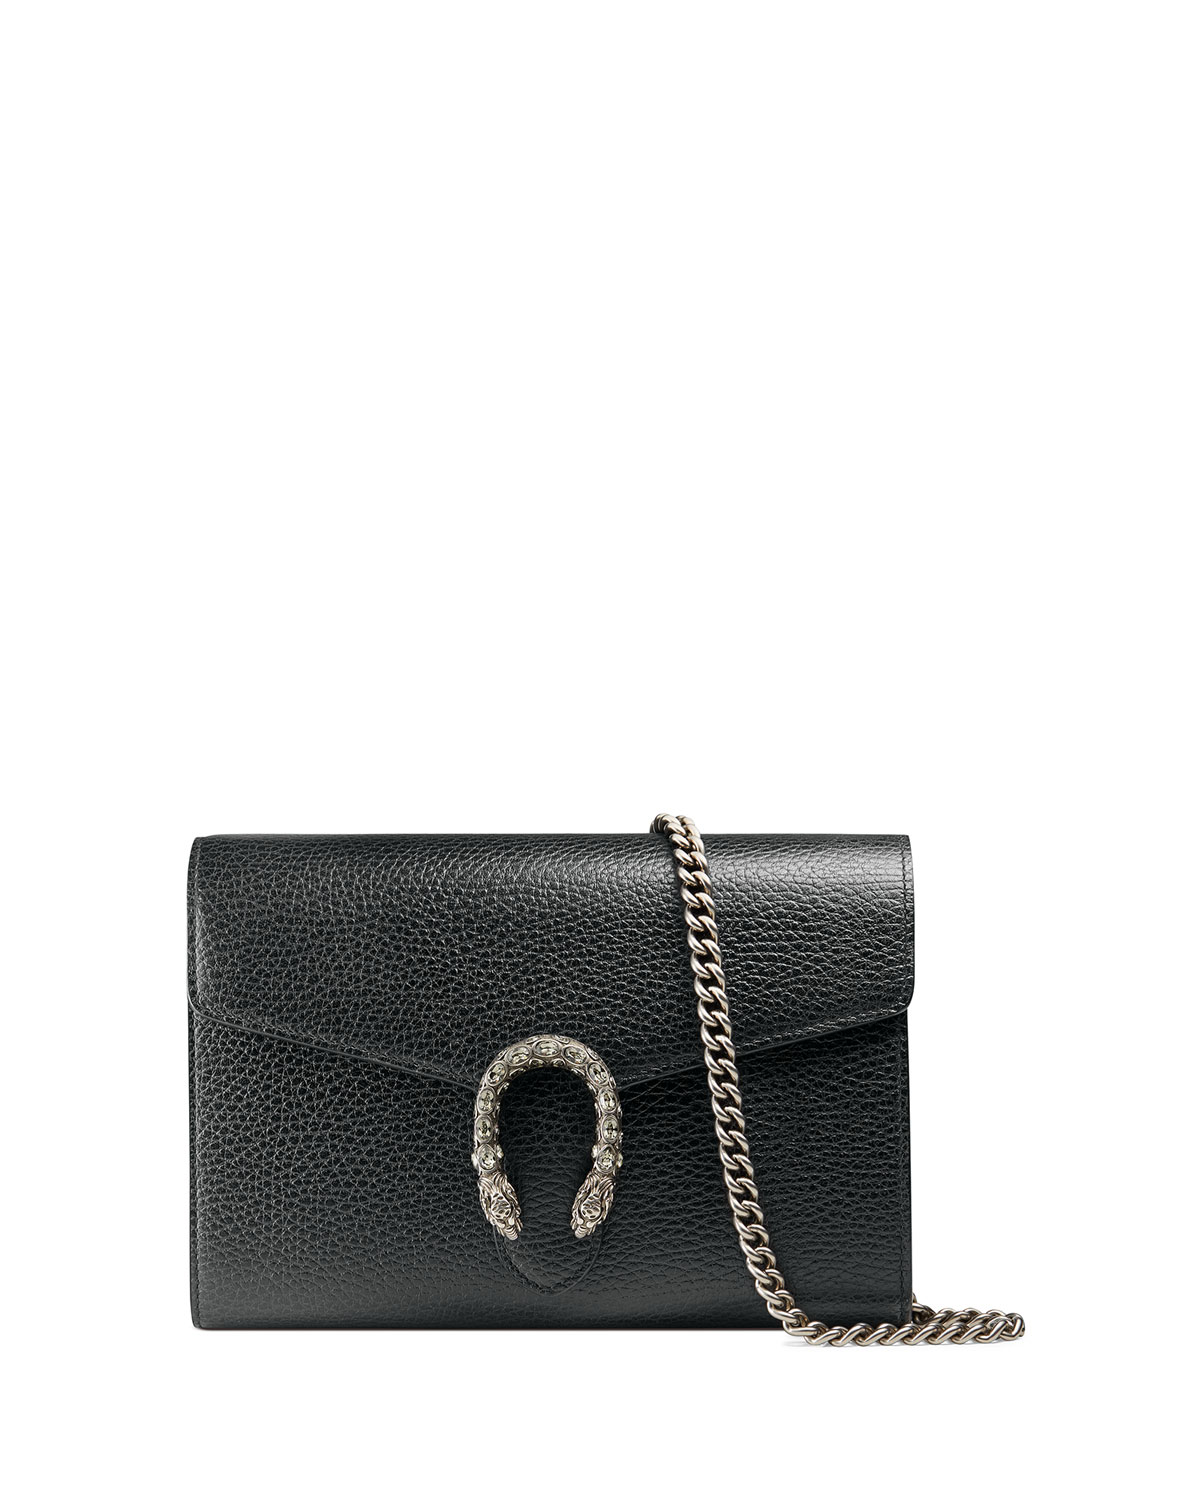 a63d5726cfe Gucci Dionysus Leather Mini Chain Bag